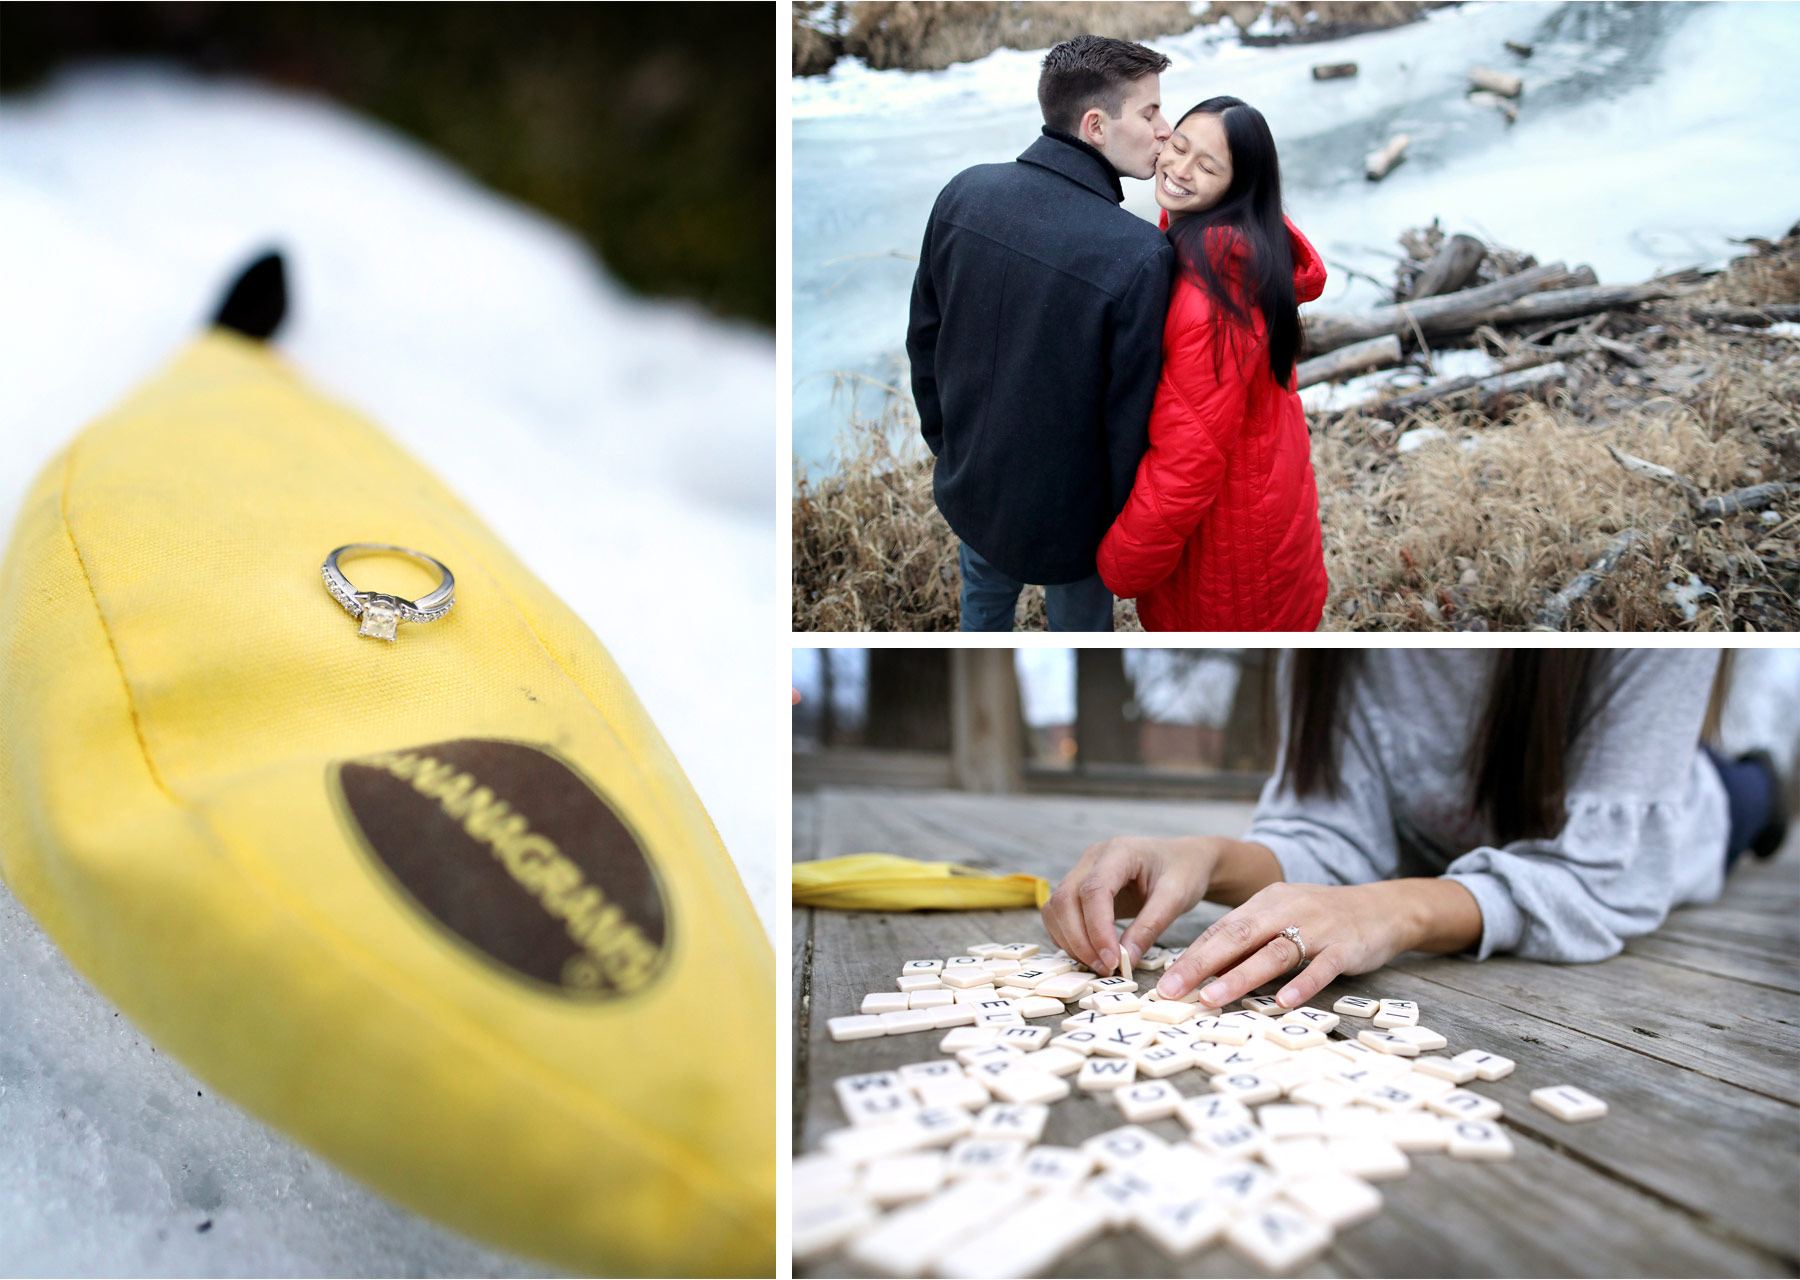 04-Engagement-Session-Vick-Photography-Edina-Minneapolis-Minnesota-Field-Winter-Cozy-Jackets-Bananagram-Ashley-and-Nicholas.jpg